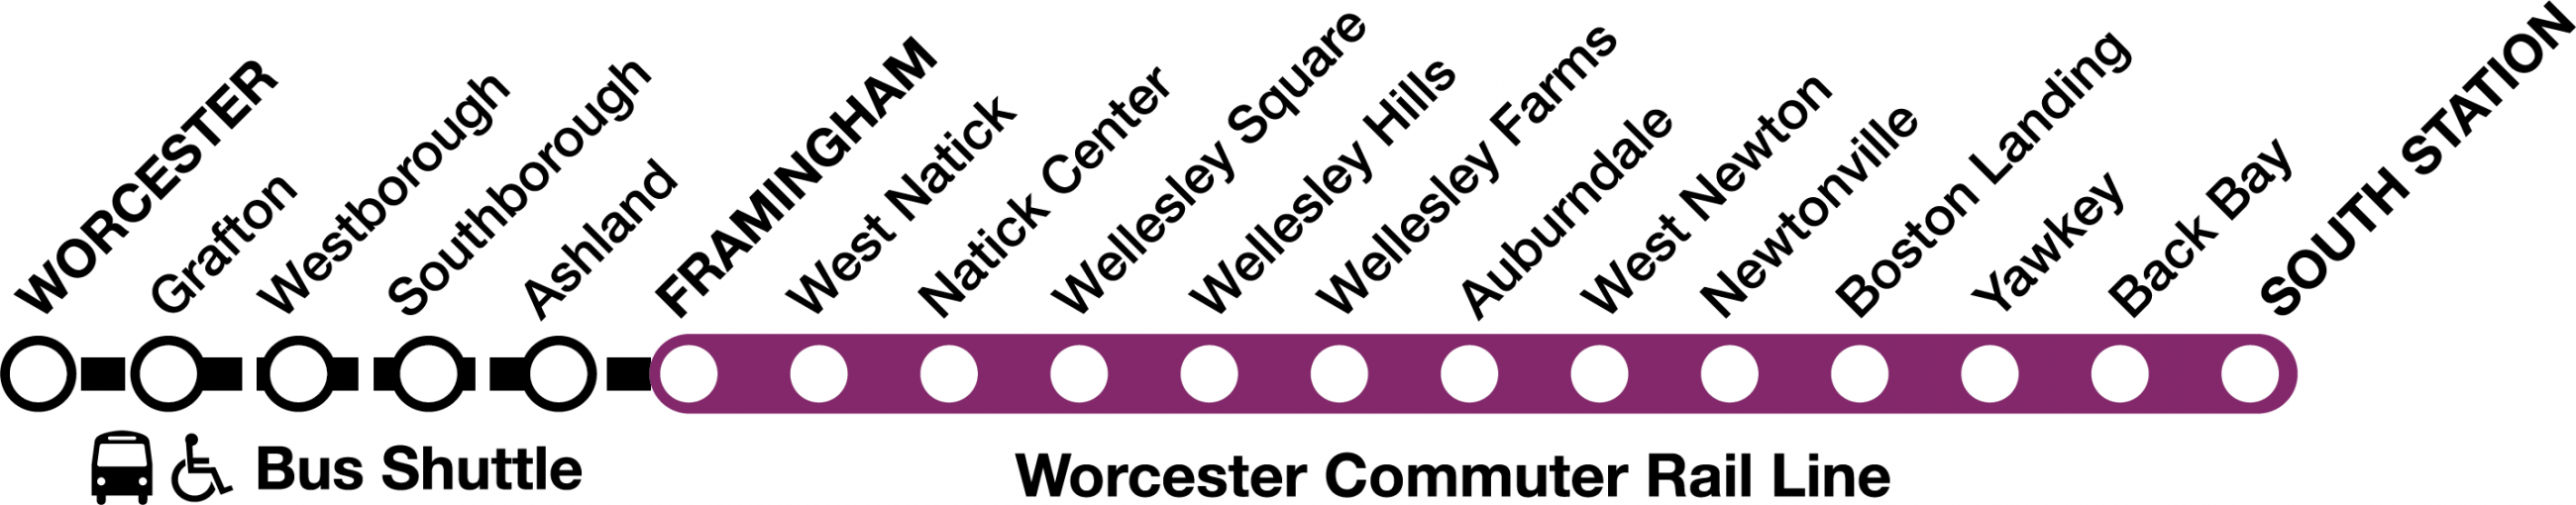 For weekends May 26 to June 17, bus shuttles replace train service between Worcester and Framingham stations.